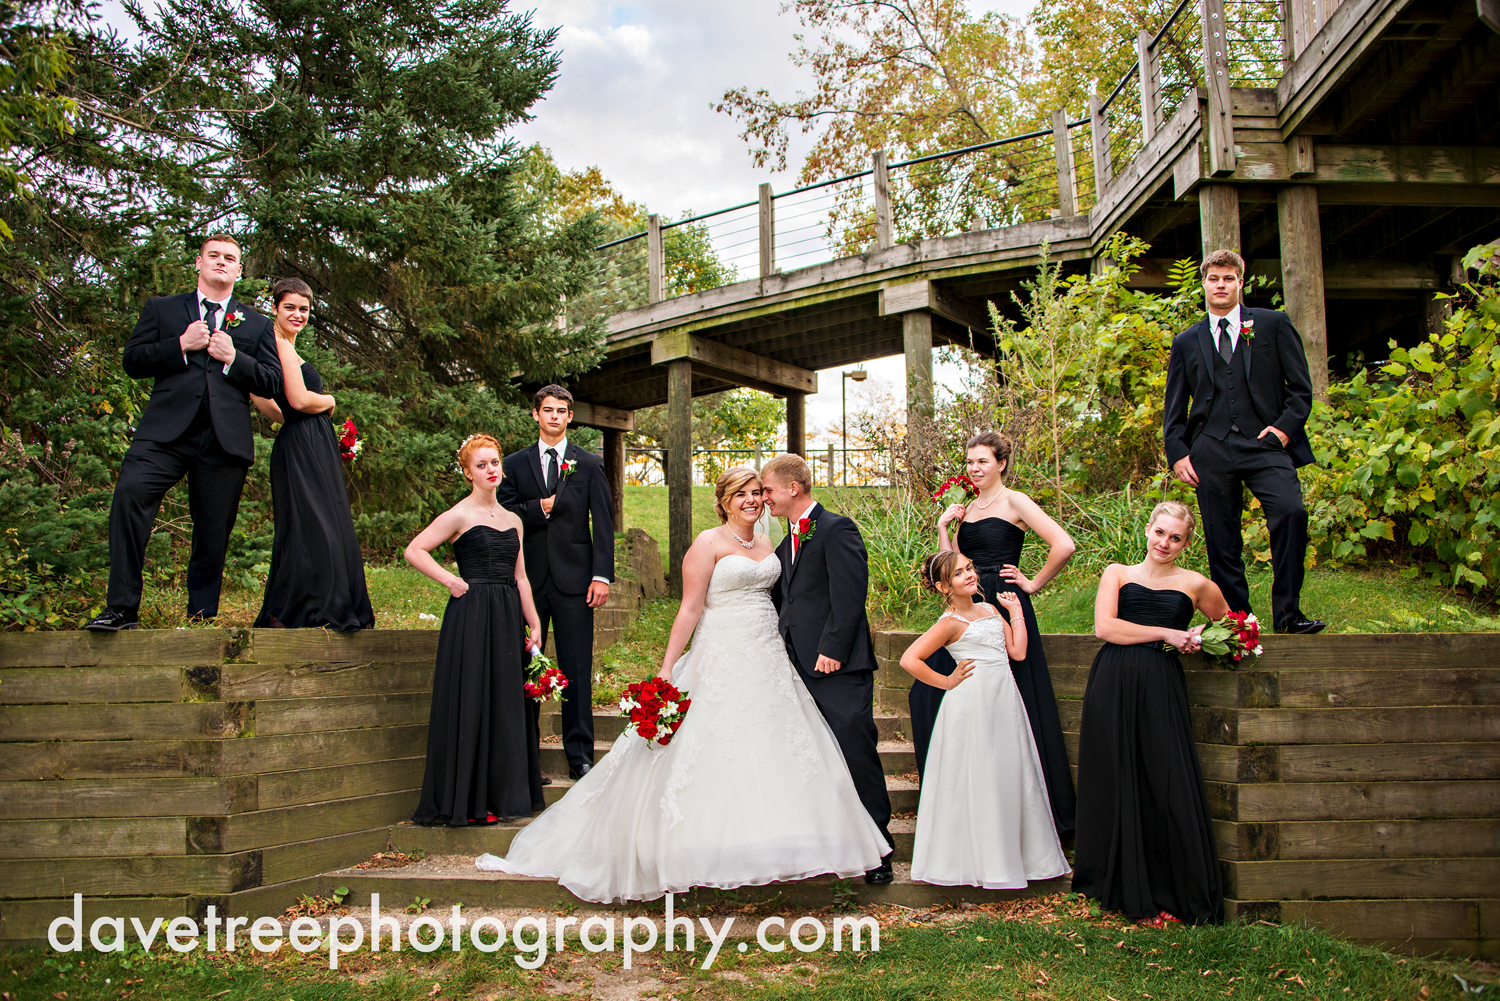 holland_wedding_photographer_61.jpg